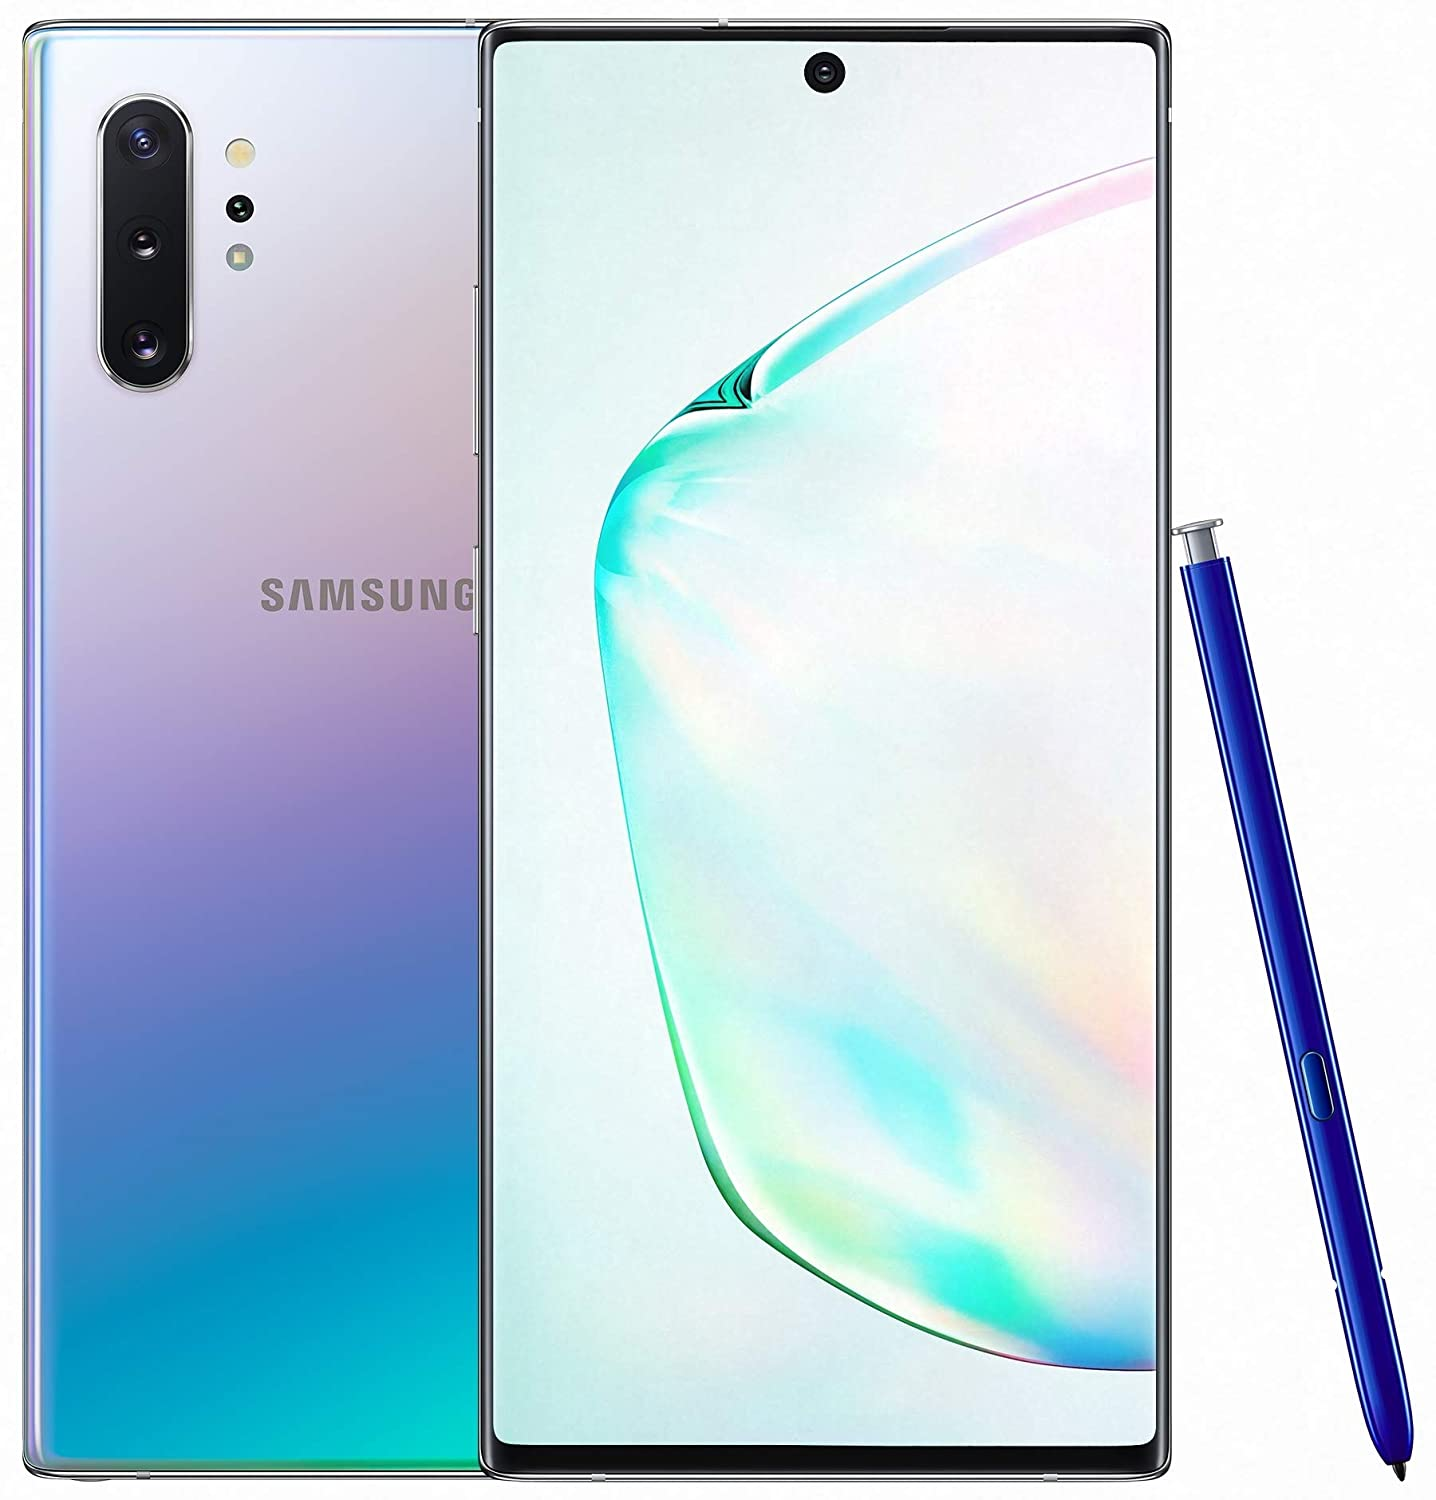 Samsung Galaxy Note 10 Plus (12 GB/256 GB)